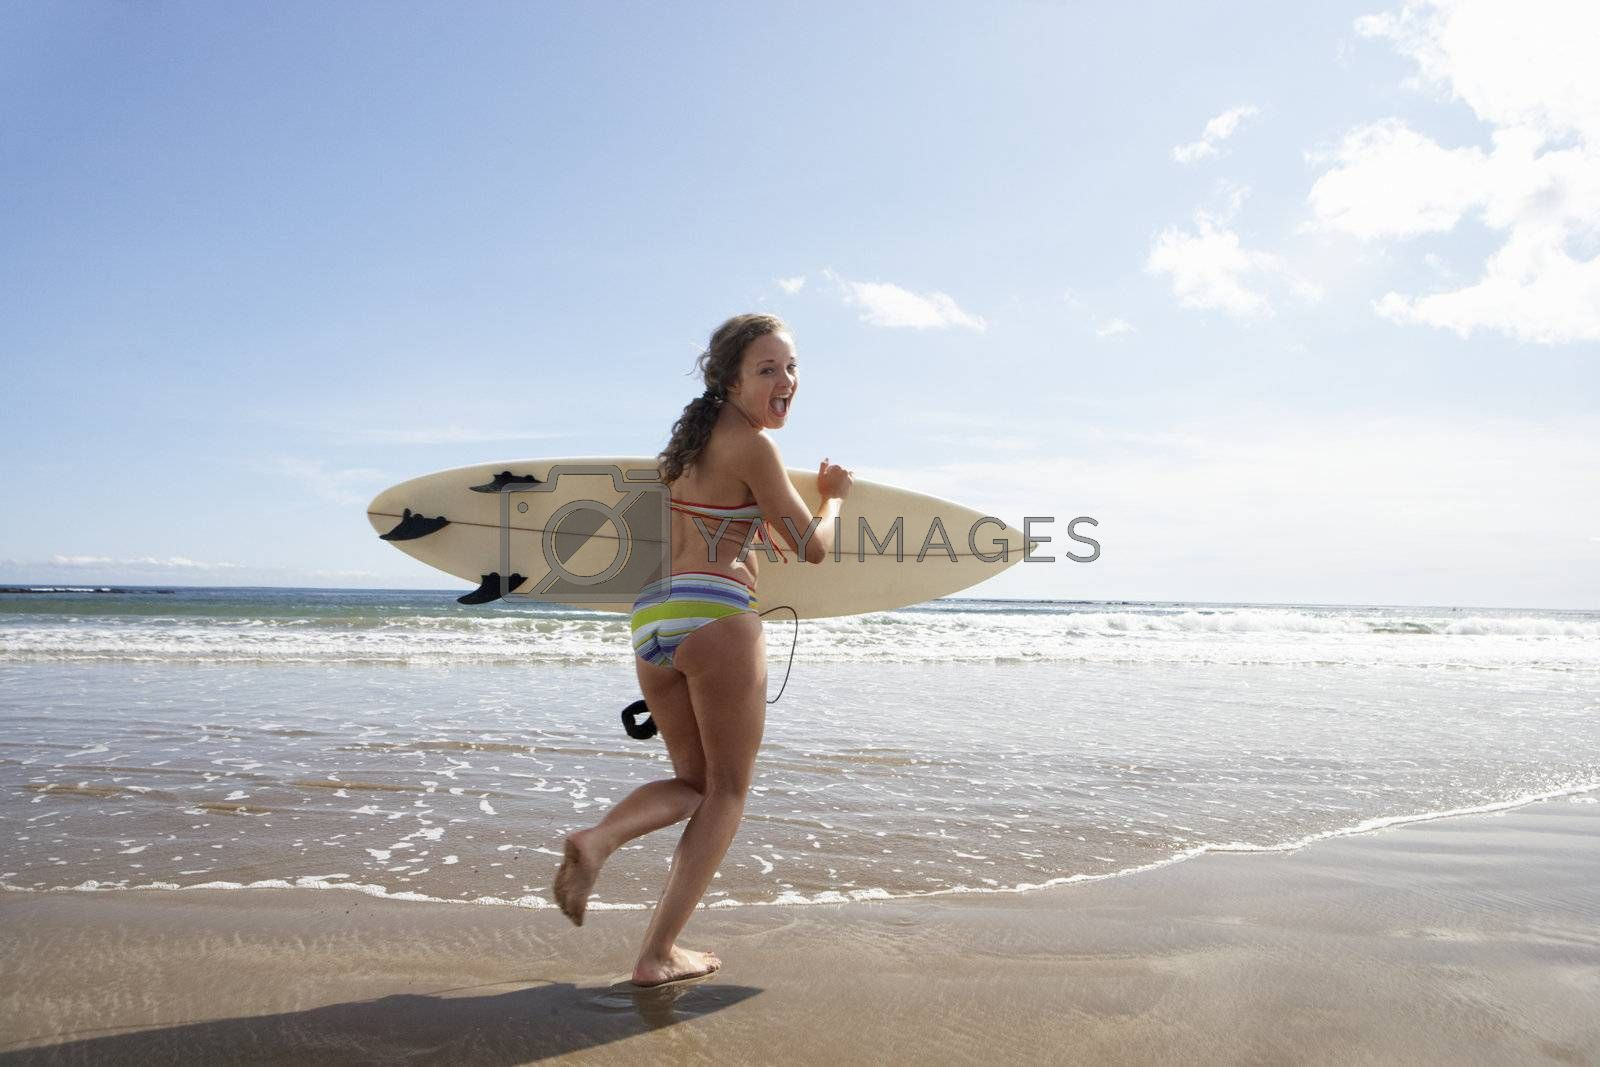 Teenager girl with surfboard